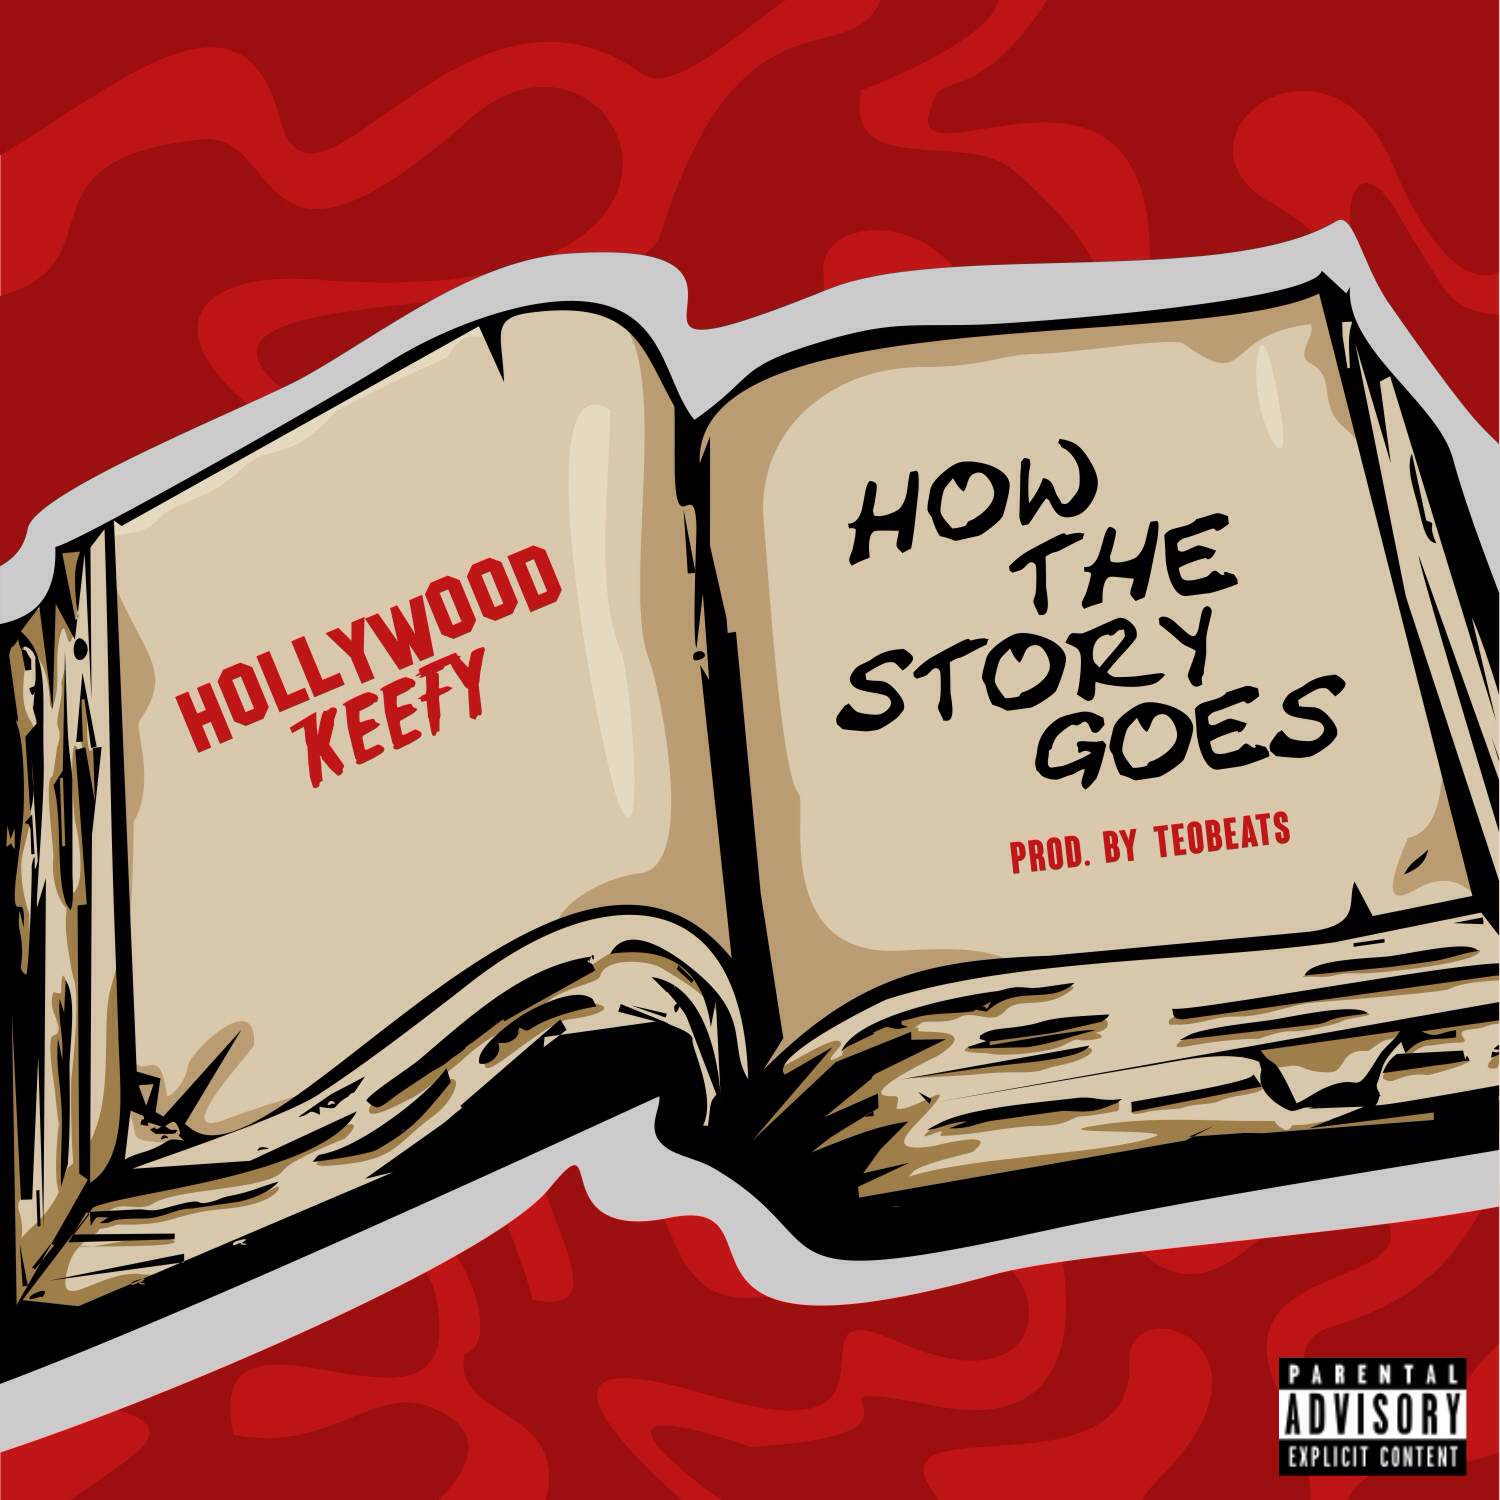 Hollywood Keefy - How The Story Goes (prod. Teo Beats) [Thizzler.com Exclusive]